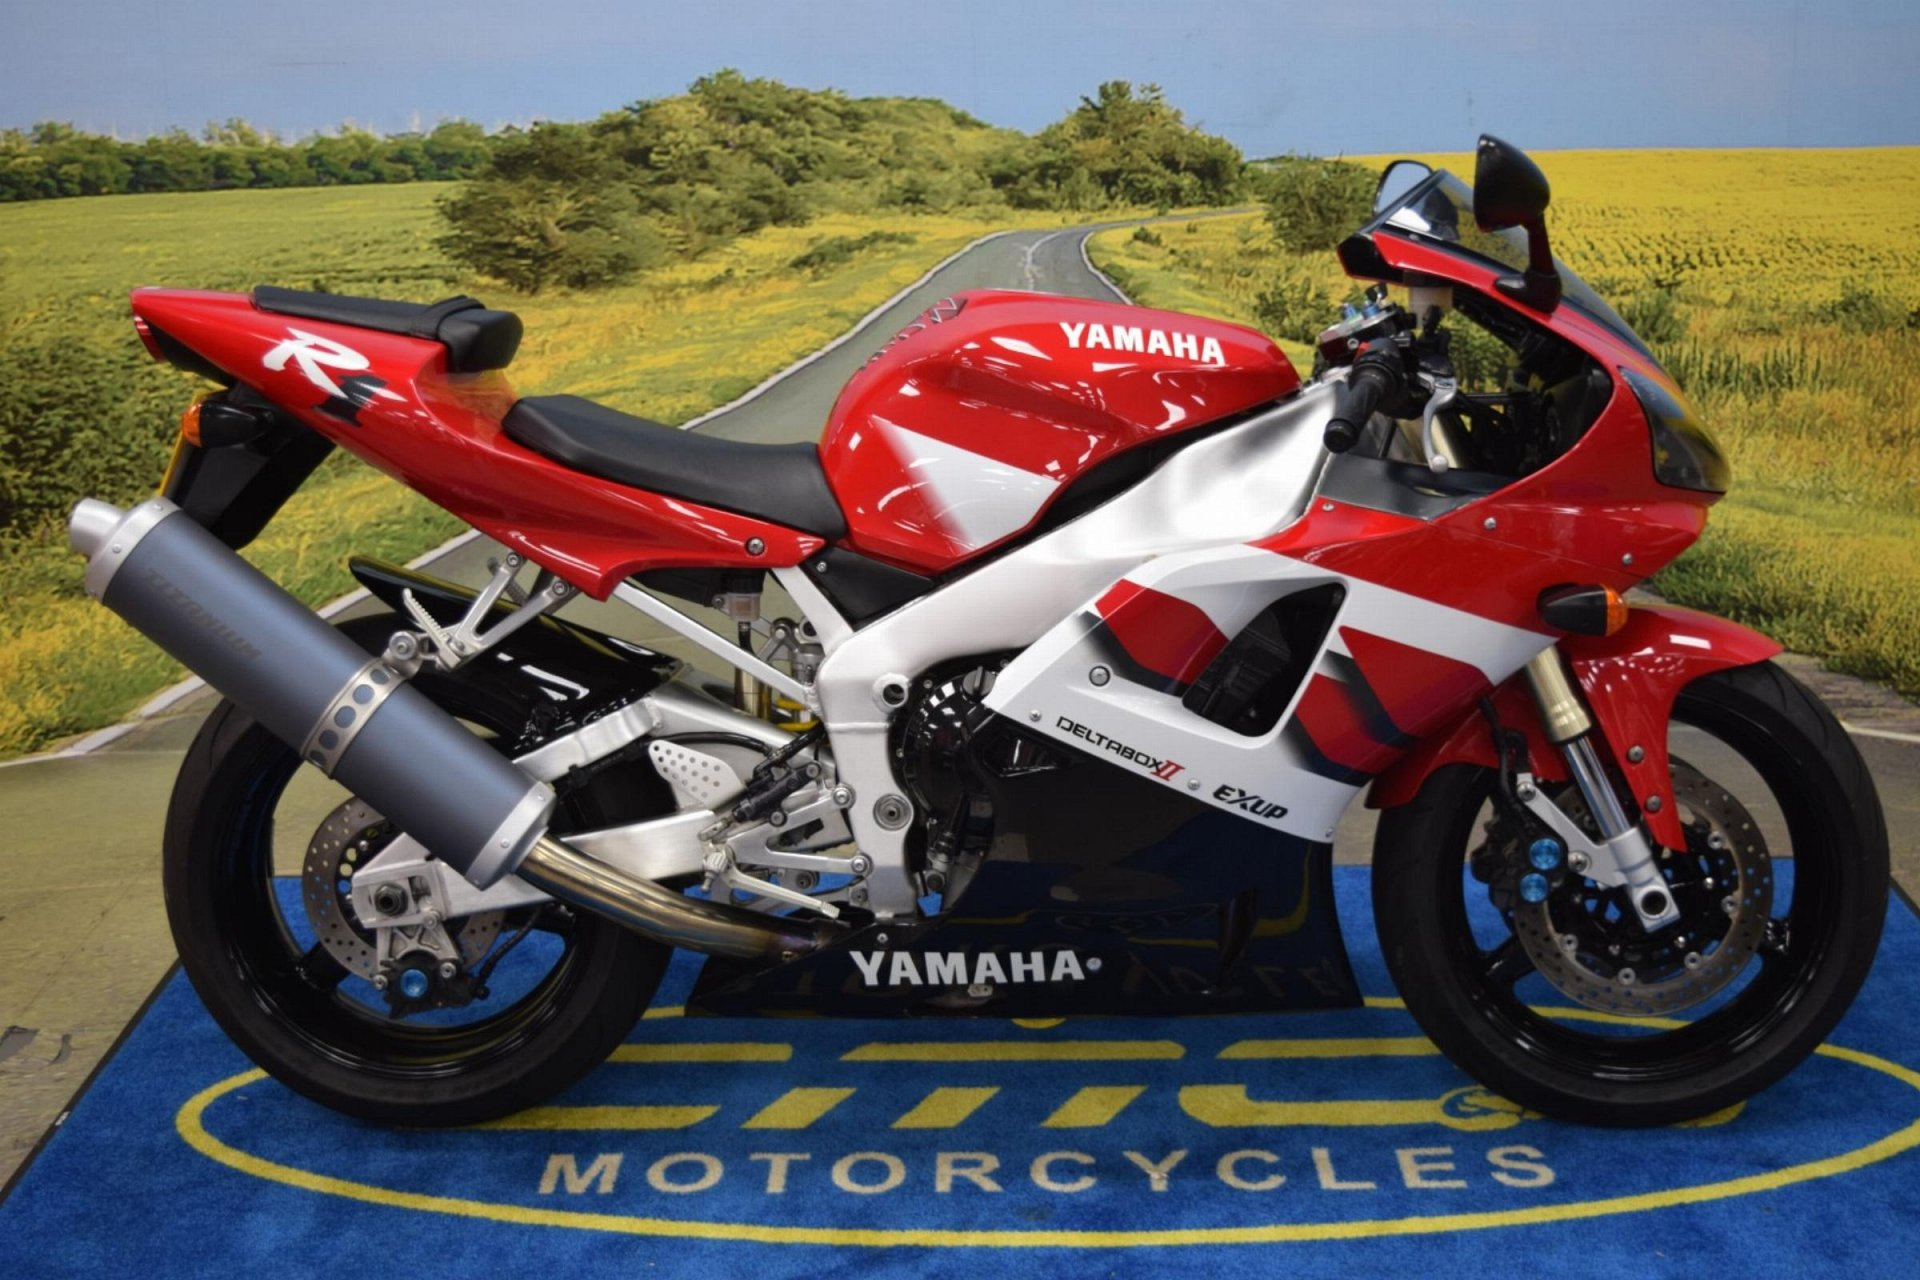 2000 Yamaha YZF R1 for sale in Staffordshire